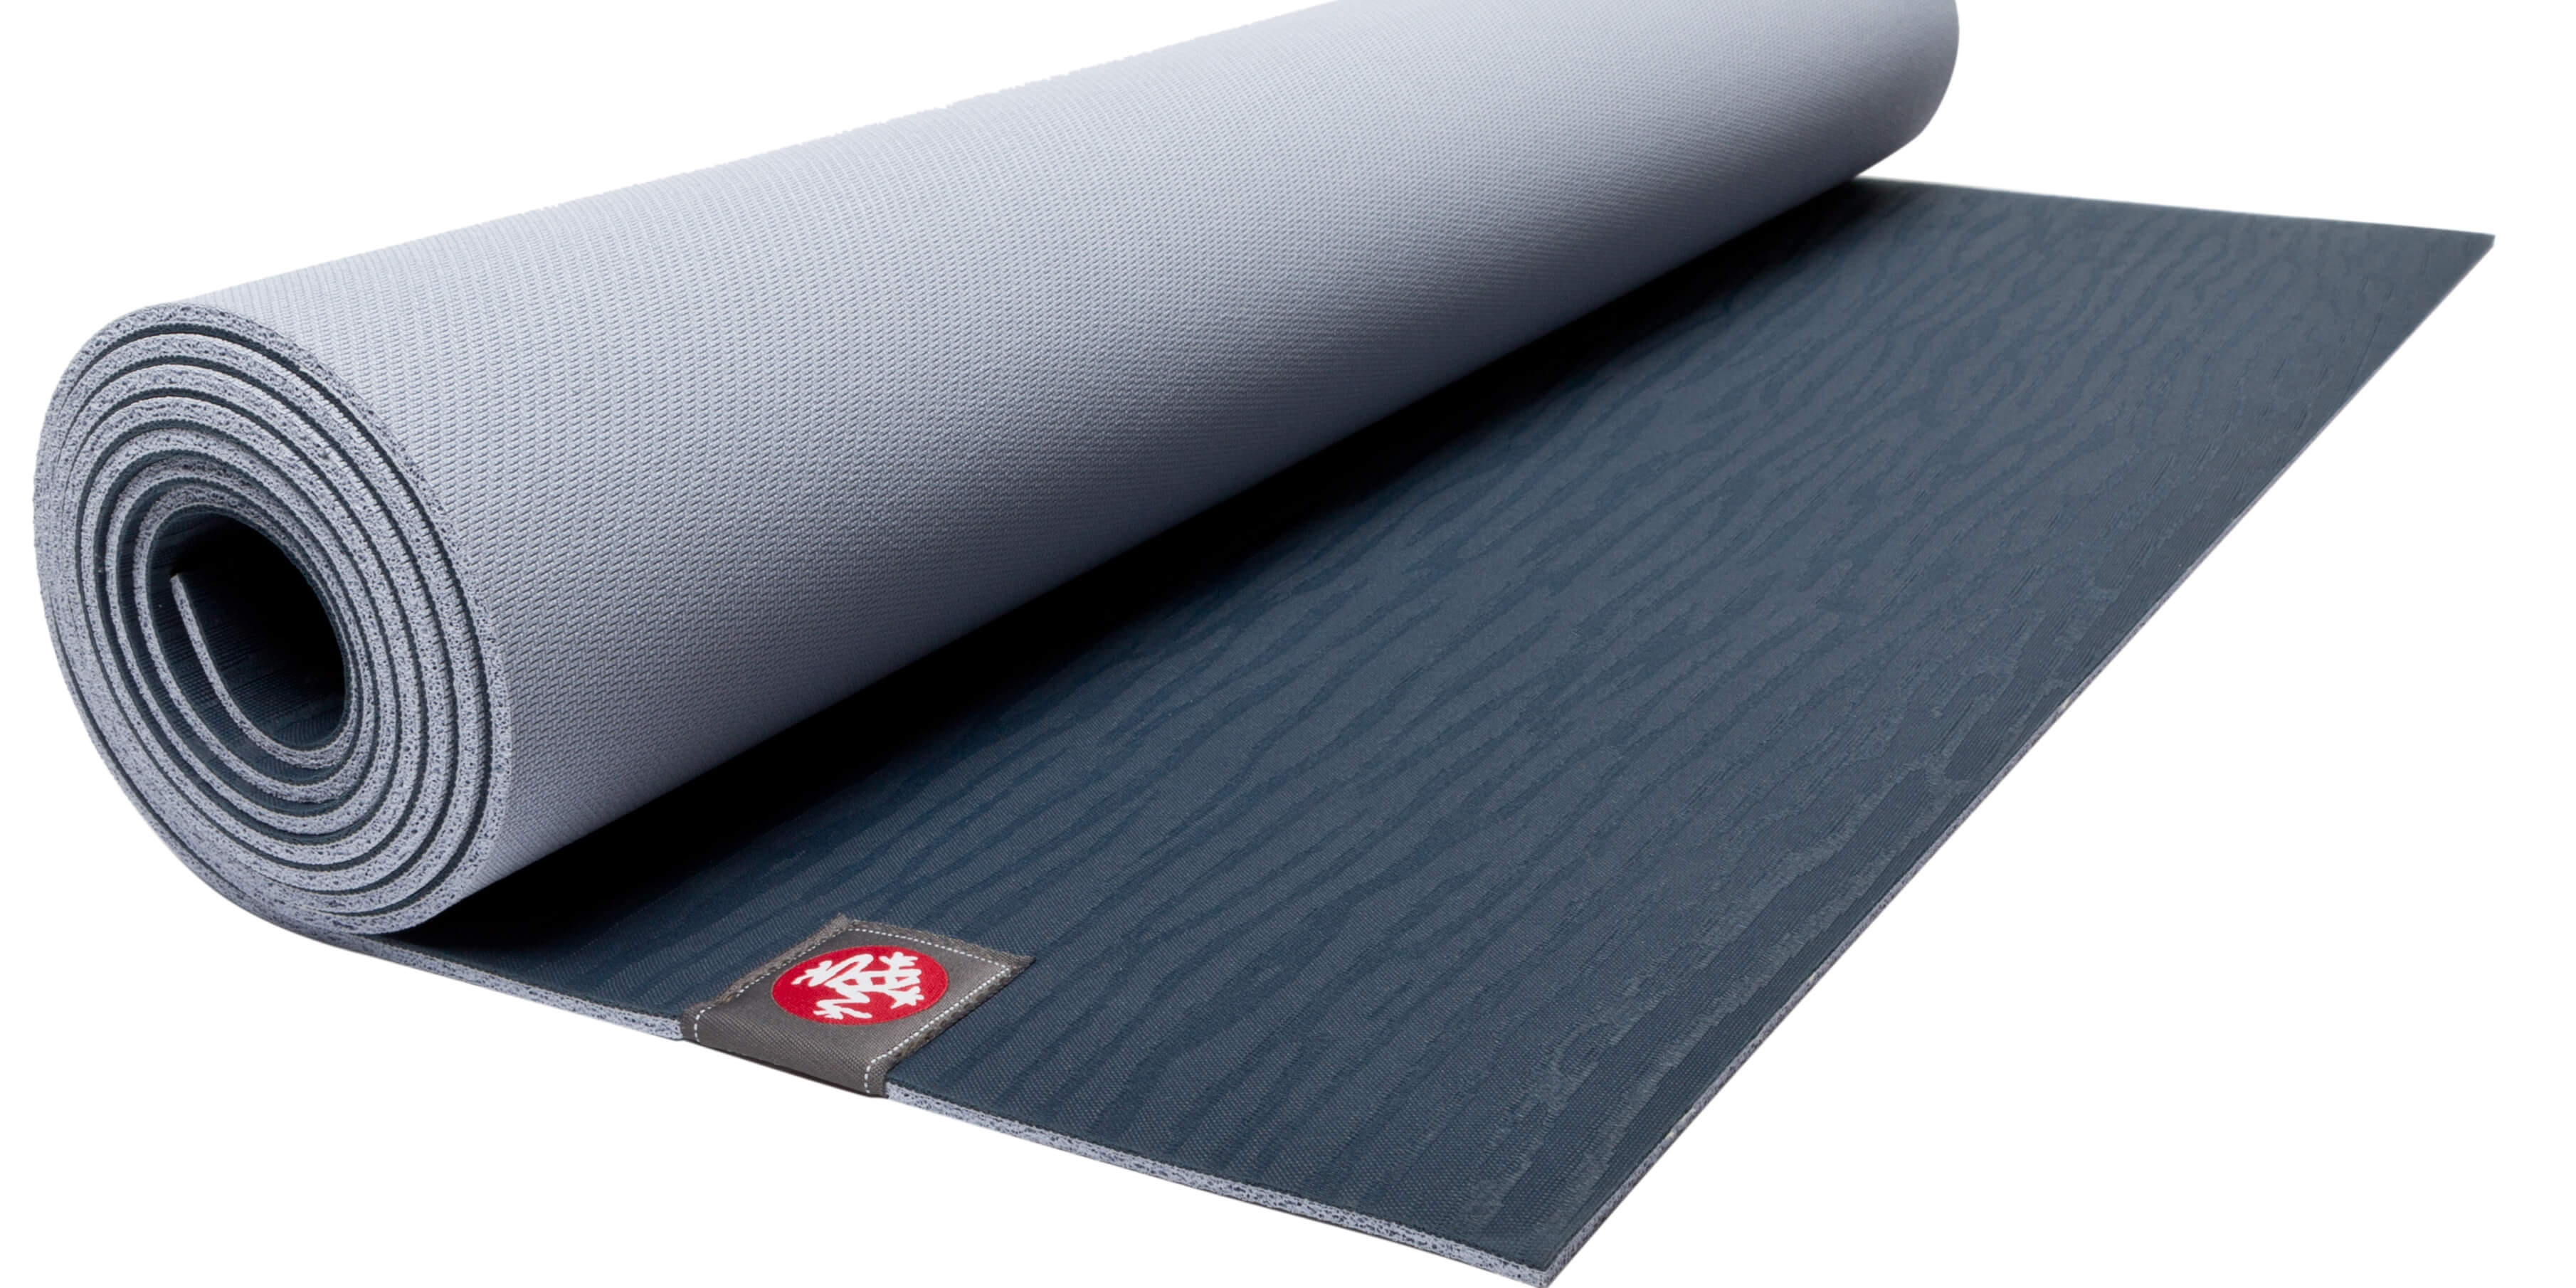 natural-rubber-yoga-mat-blue-rolled